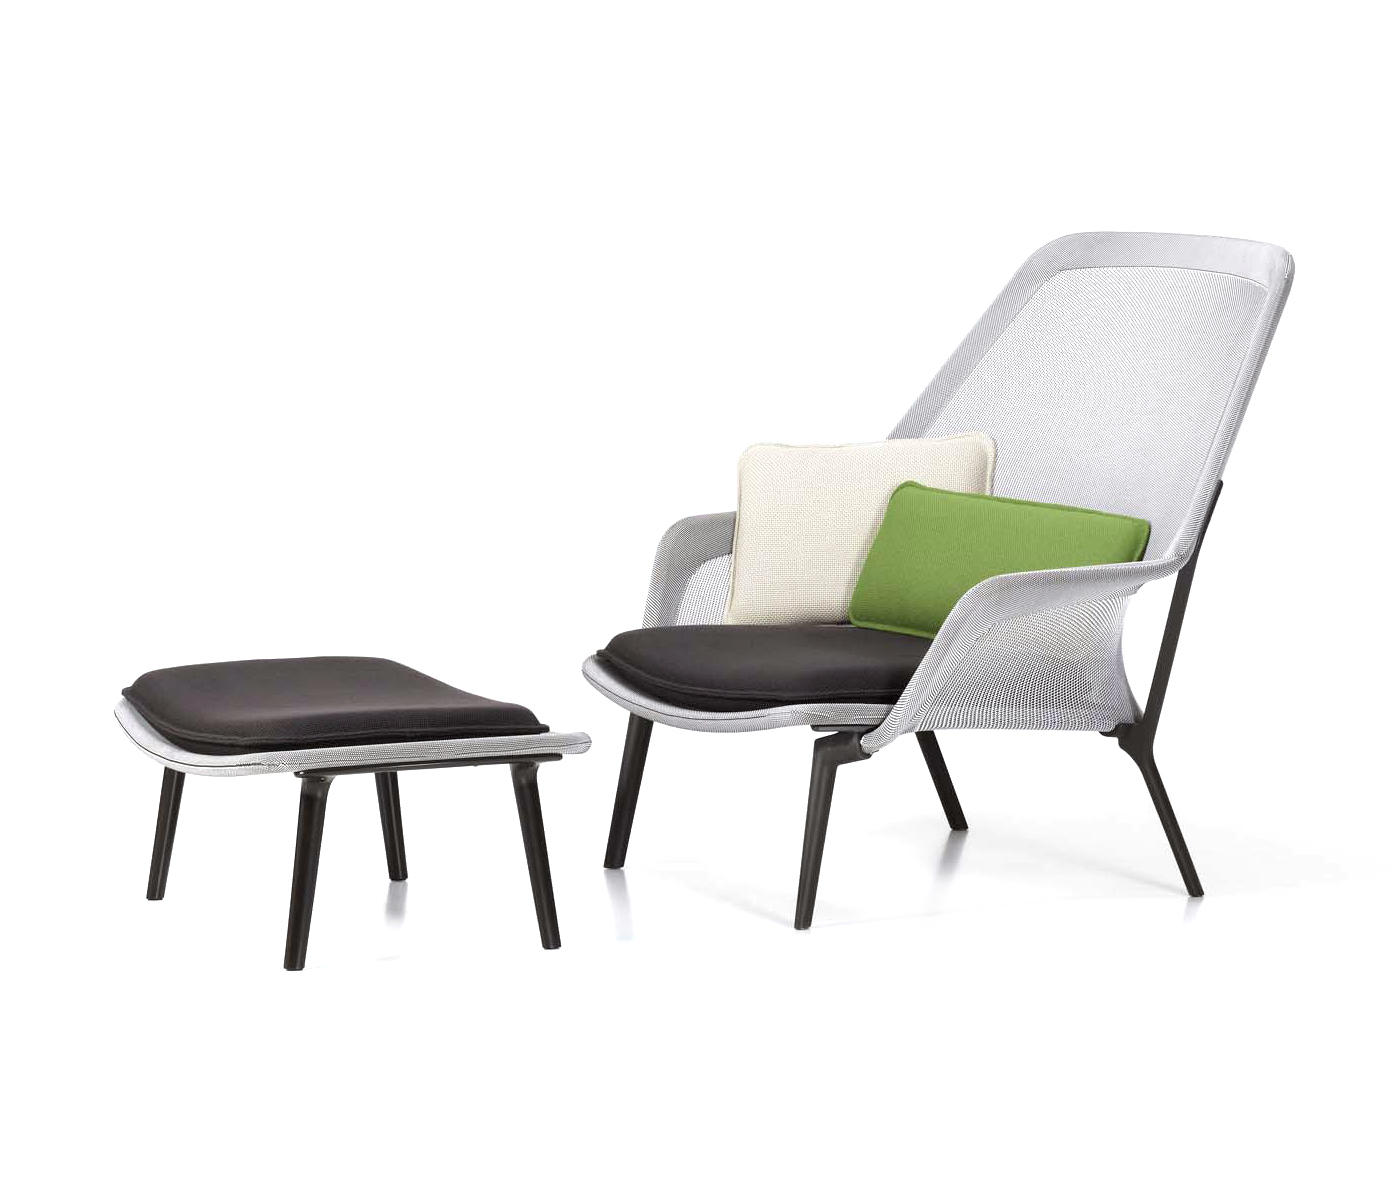 slow chair ottoman lounge chairs from vitra architonic. Black Bedroom Furniture Sets. Home Design Ideas